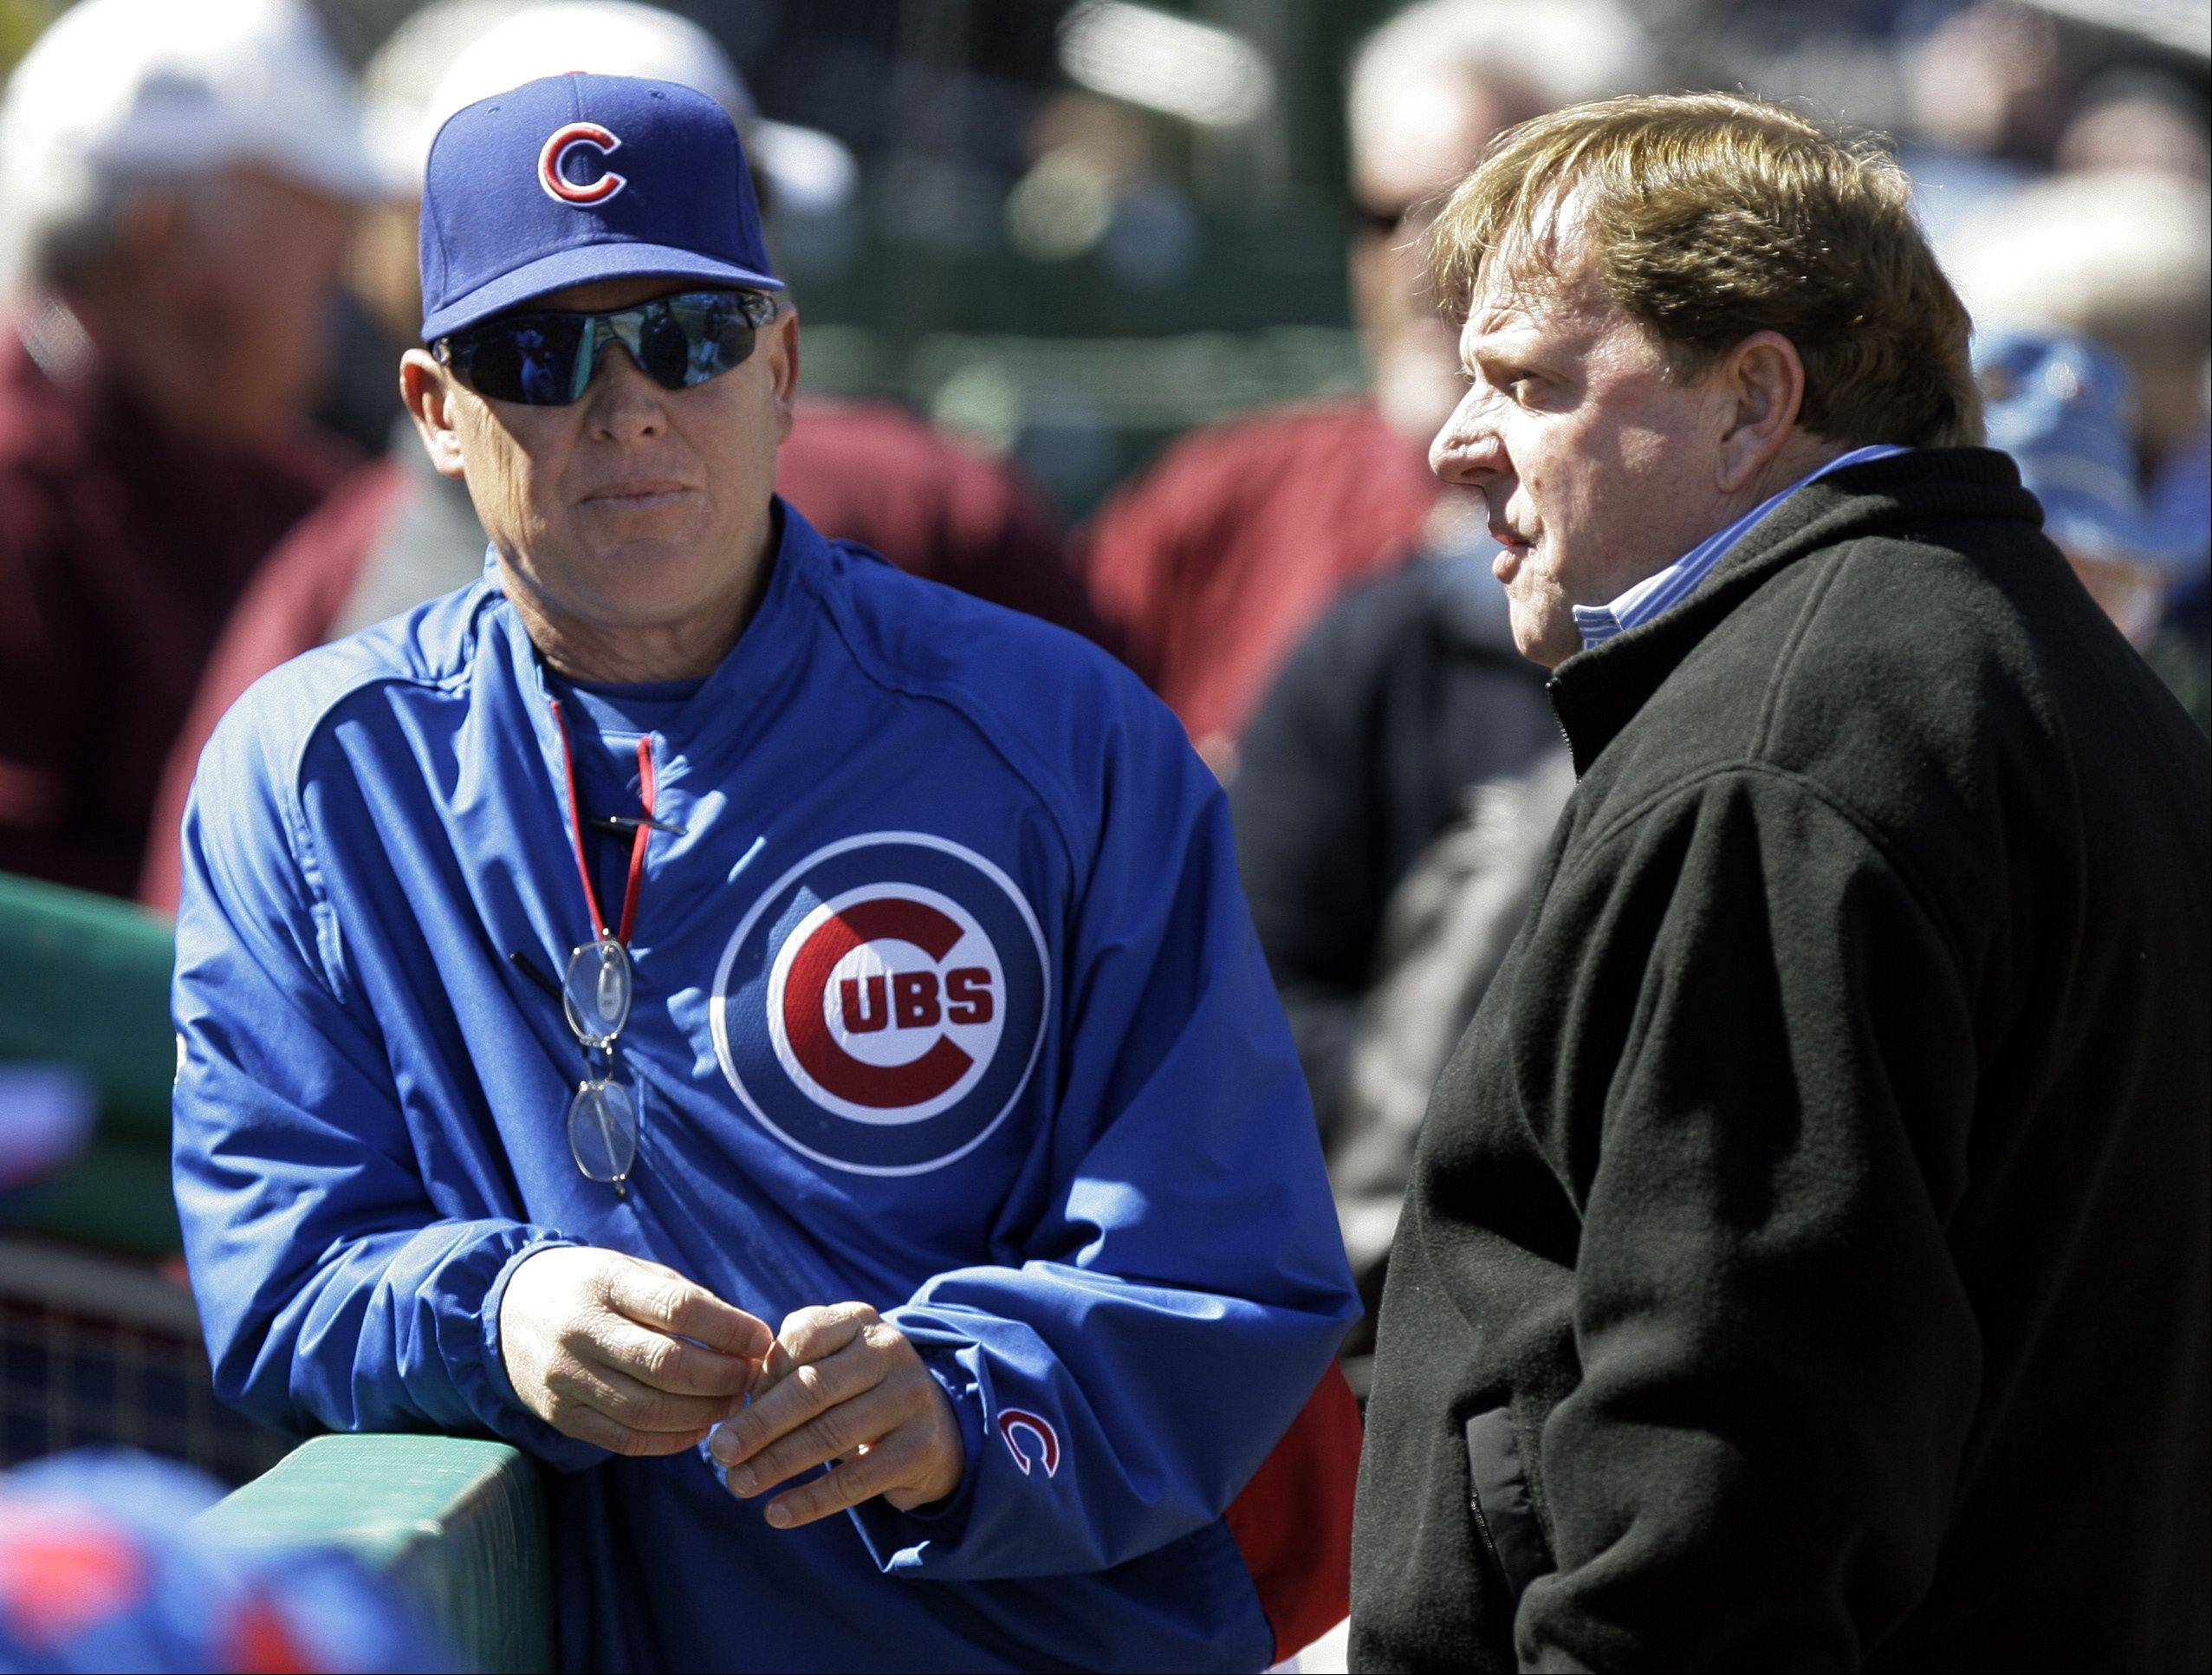 Cubs release Quade, begin manager search